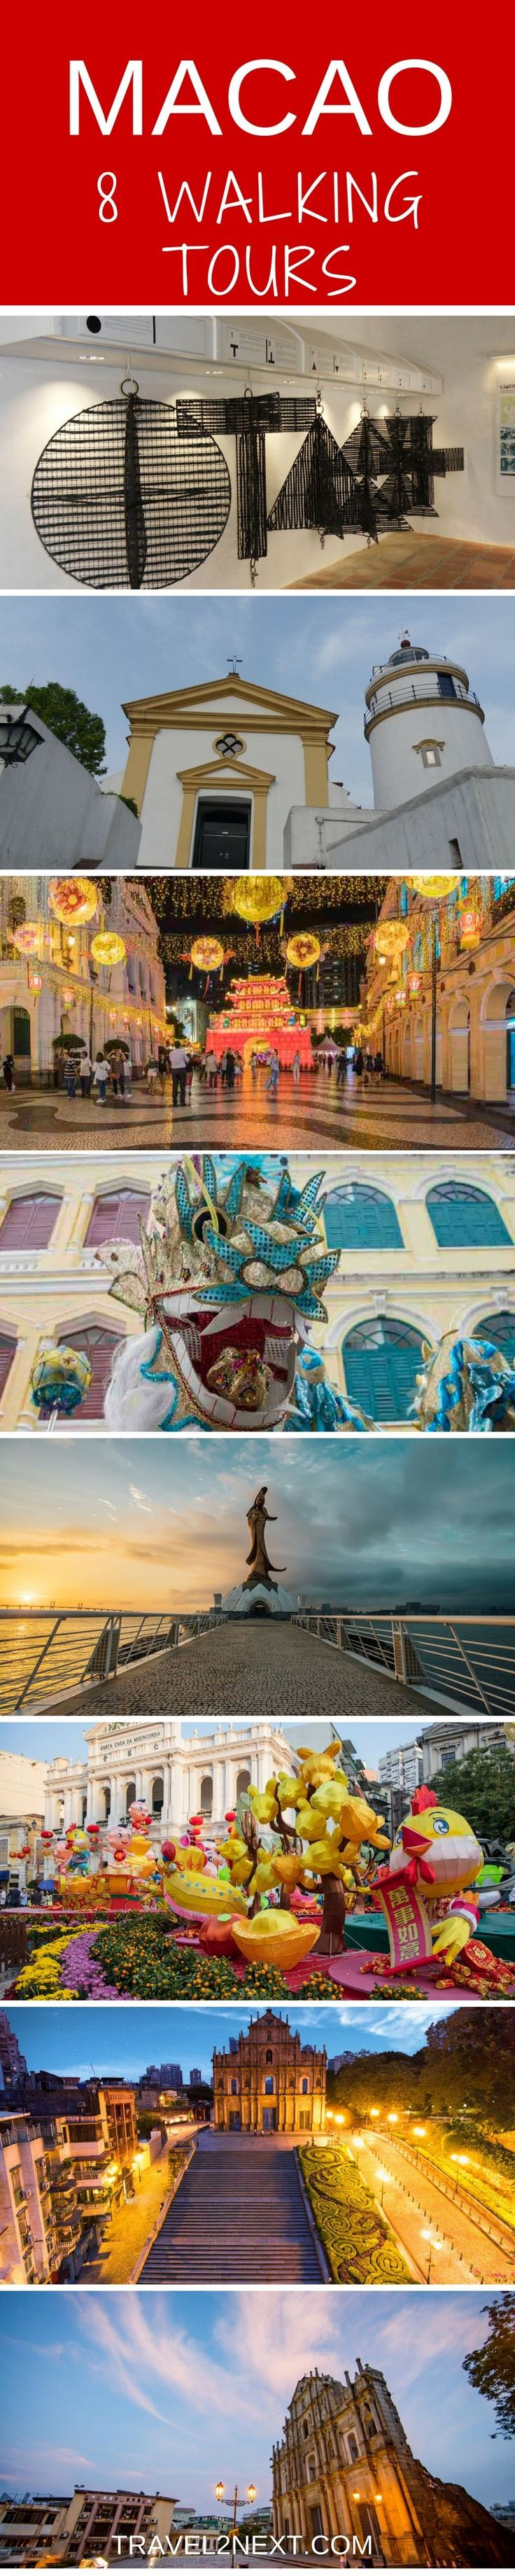 Macao Tourist Spots and Hidden Gems – 8 Self-Guided Walking Tours. One of the advantages of Macao is its compact size.